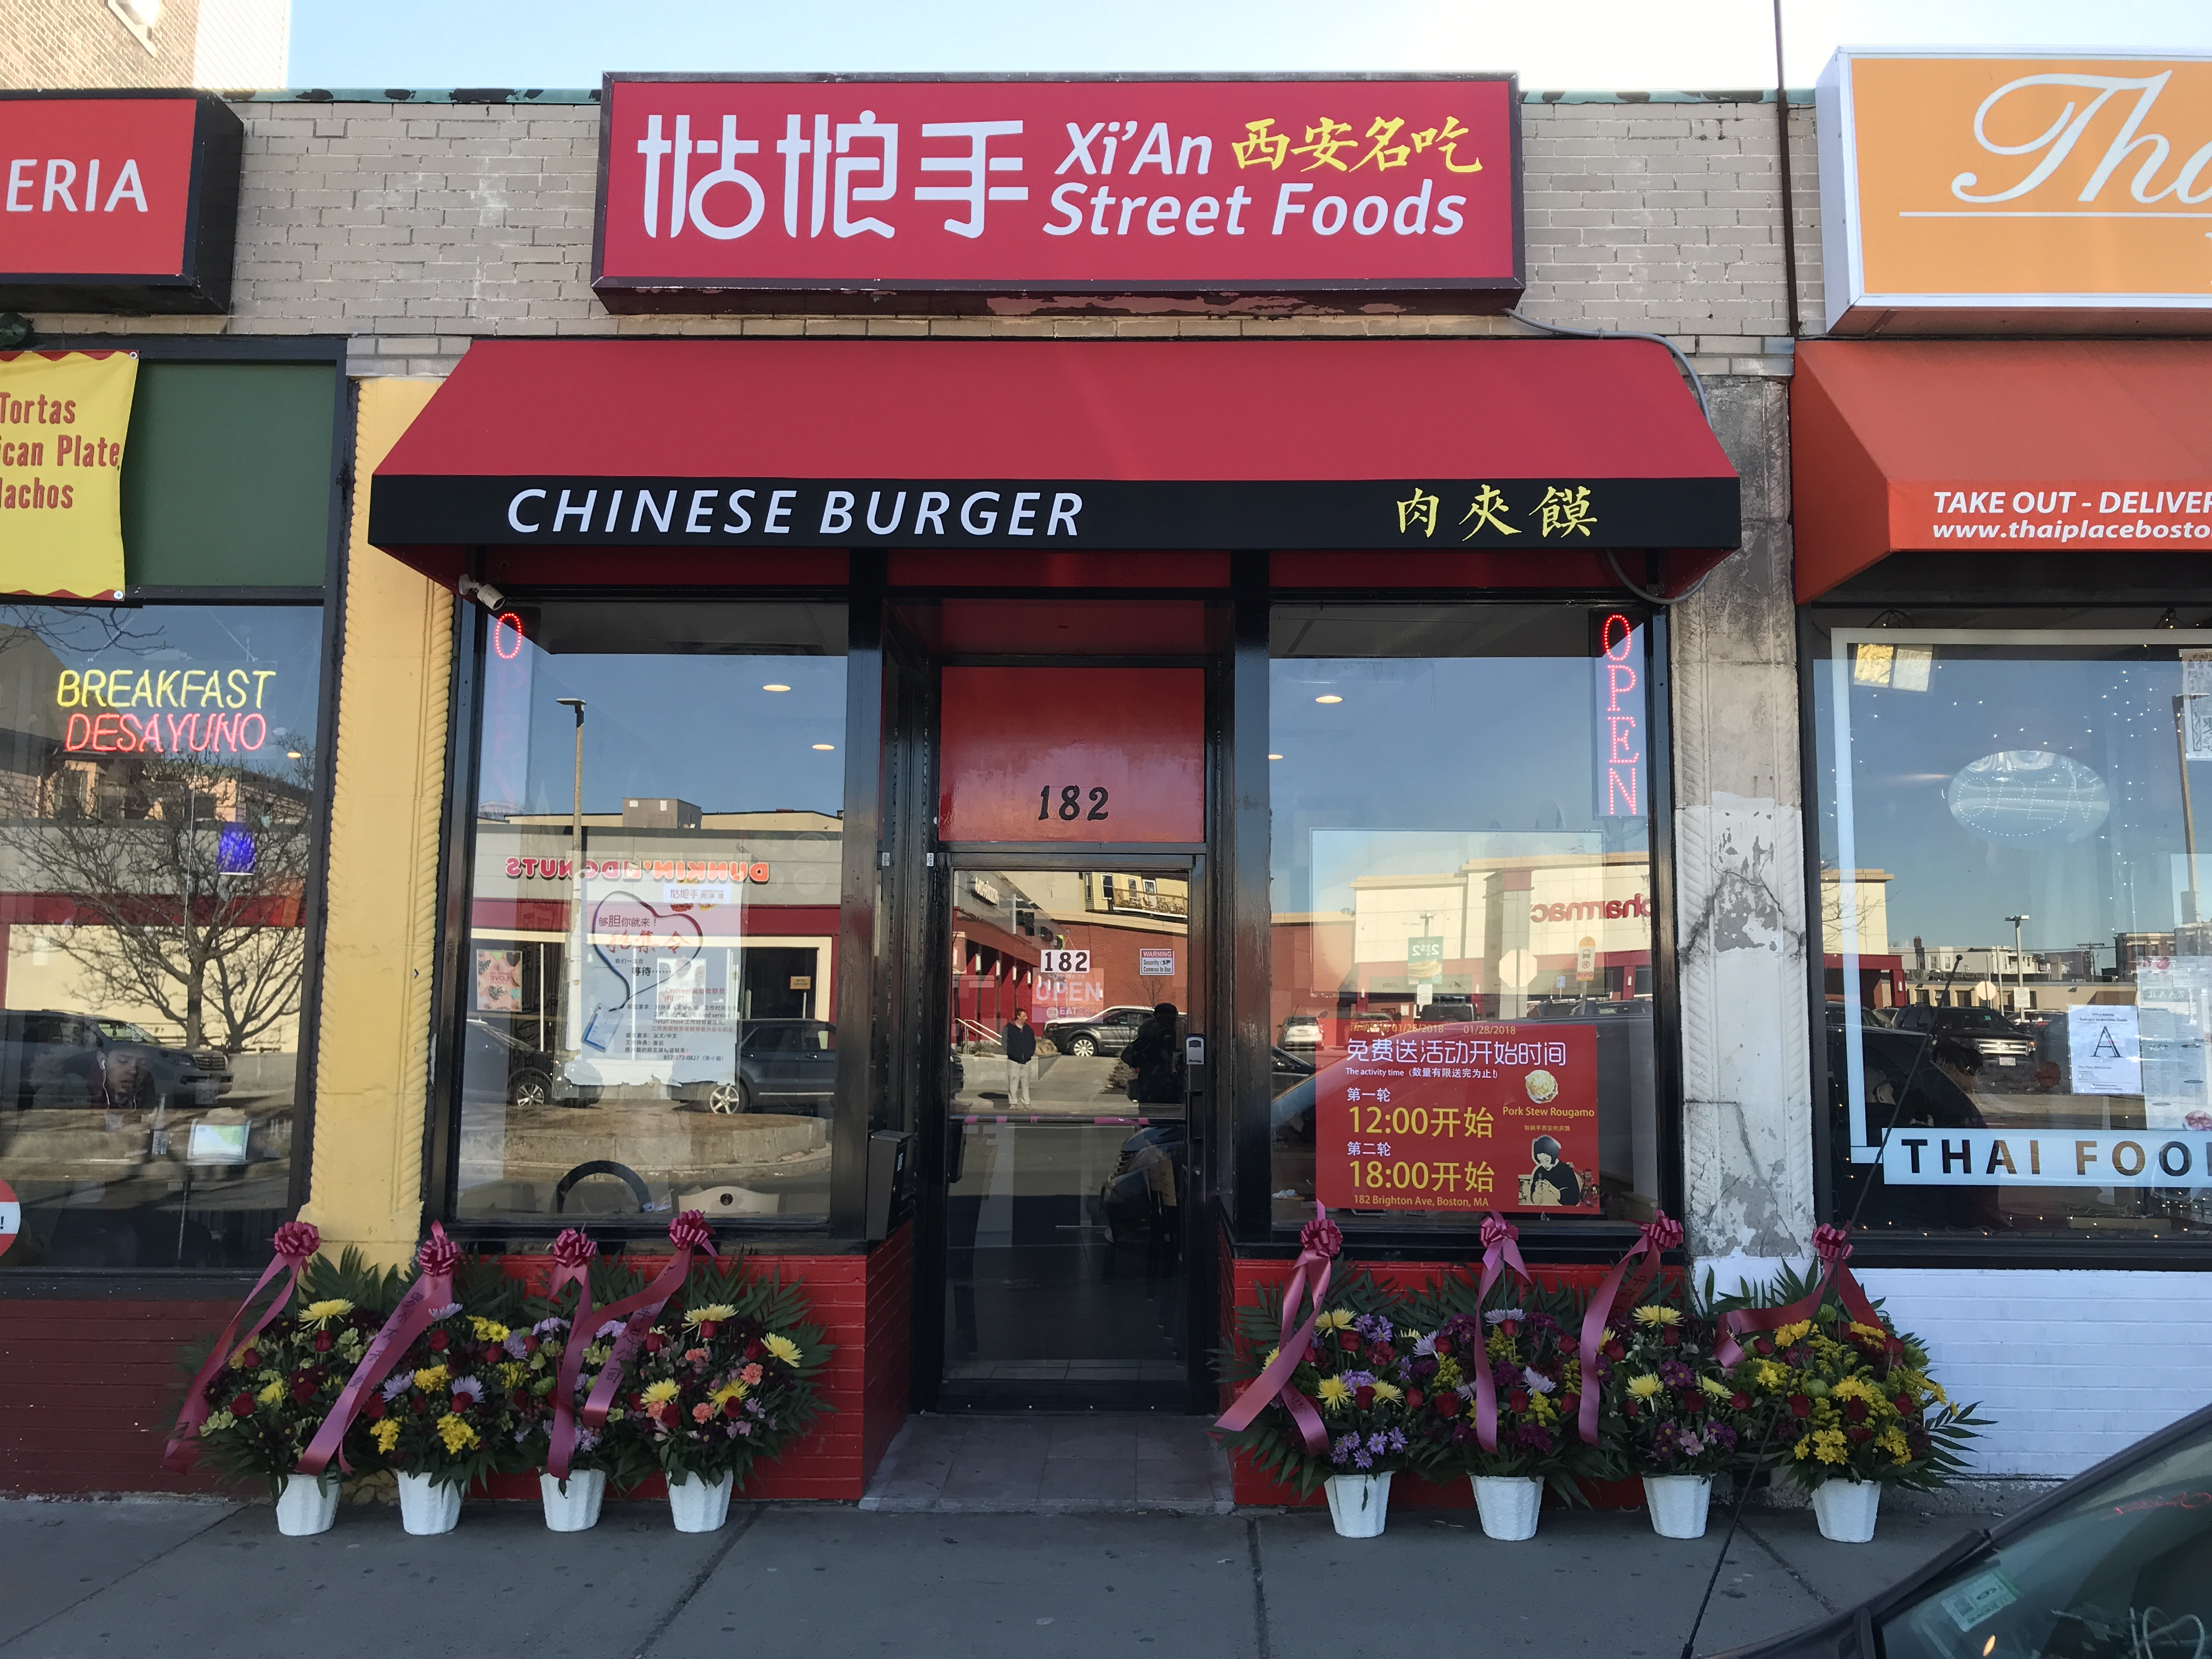 Xi'an Street Foods Opens in Allston Today